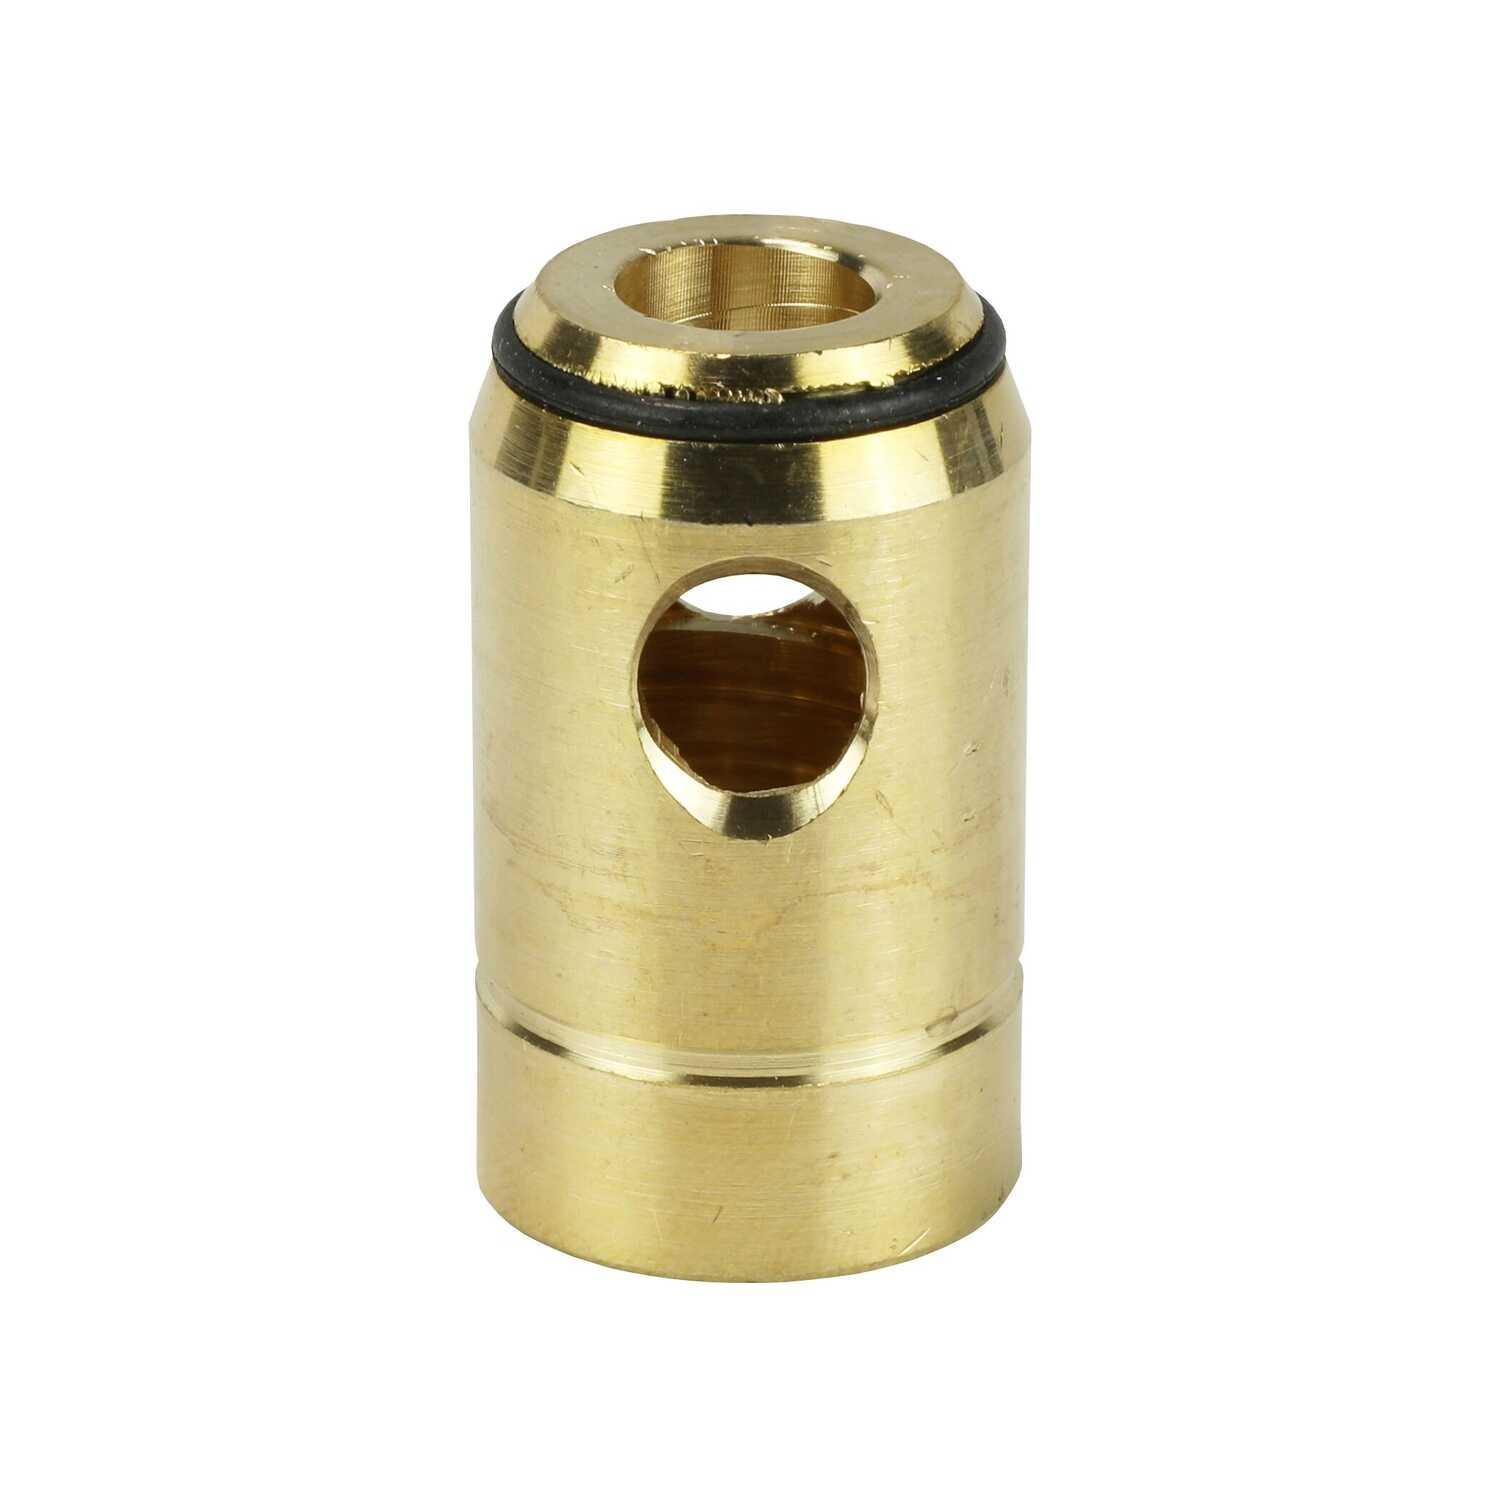 Ace  Hot  1Z-6H  Faucet Stem Barrel  For American Standard